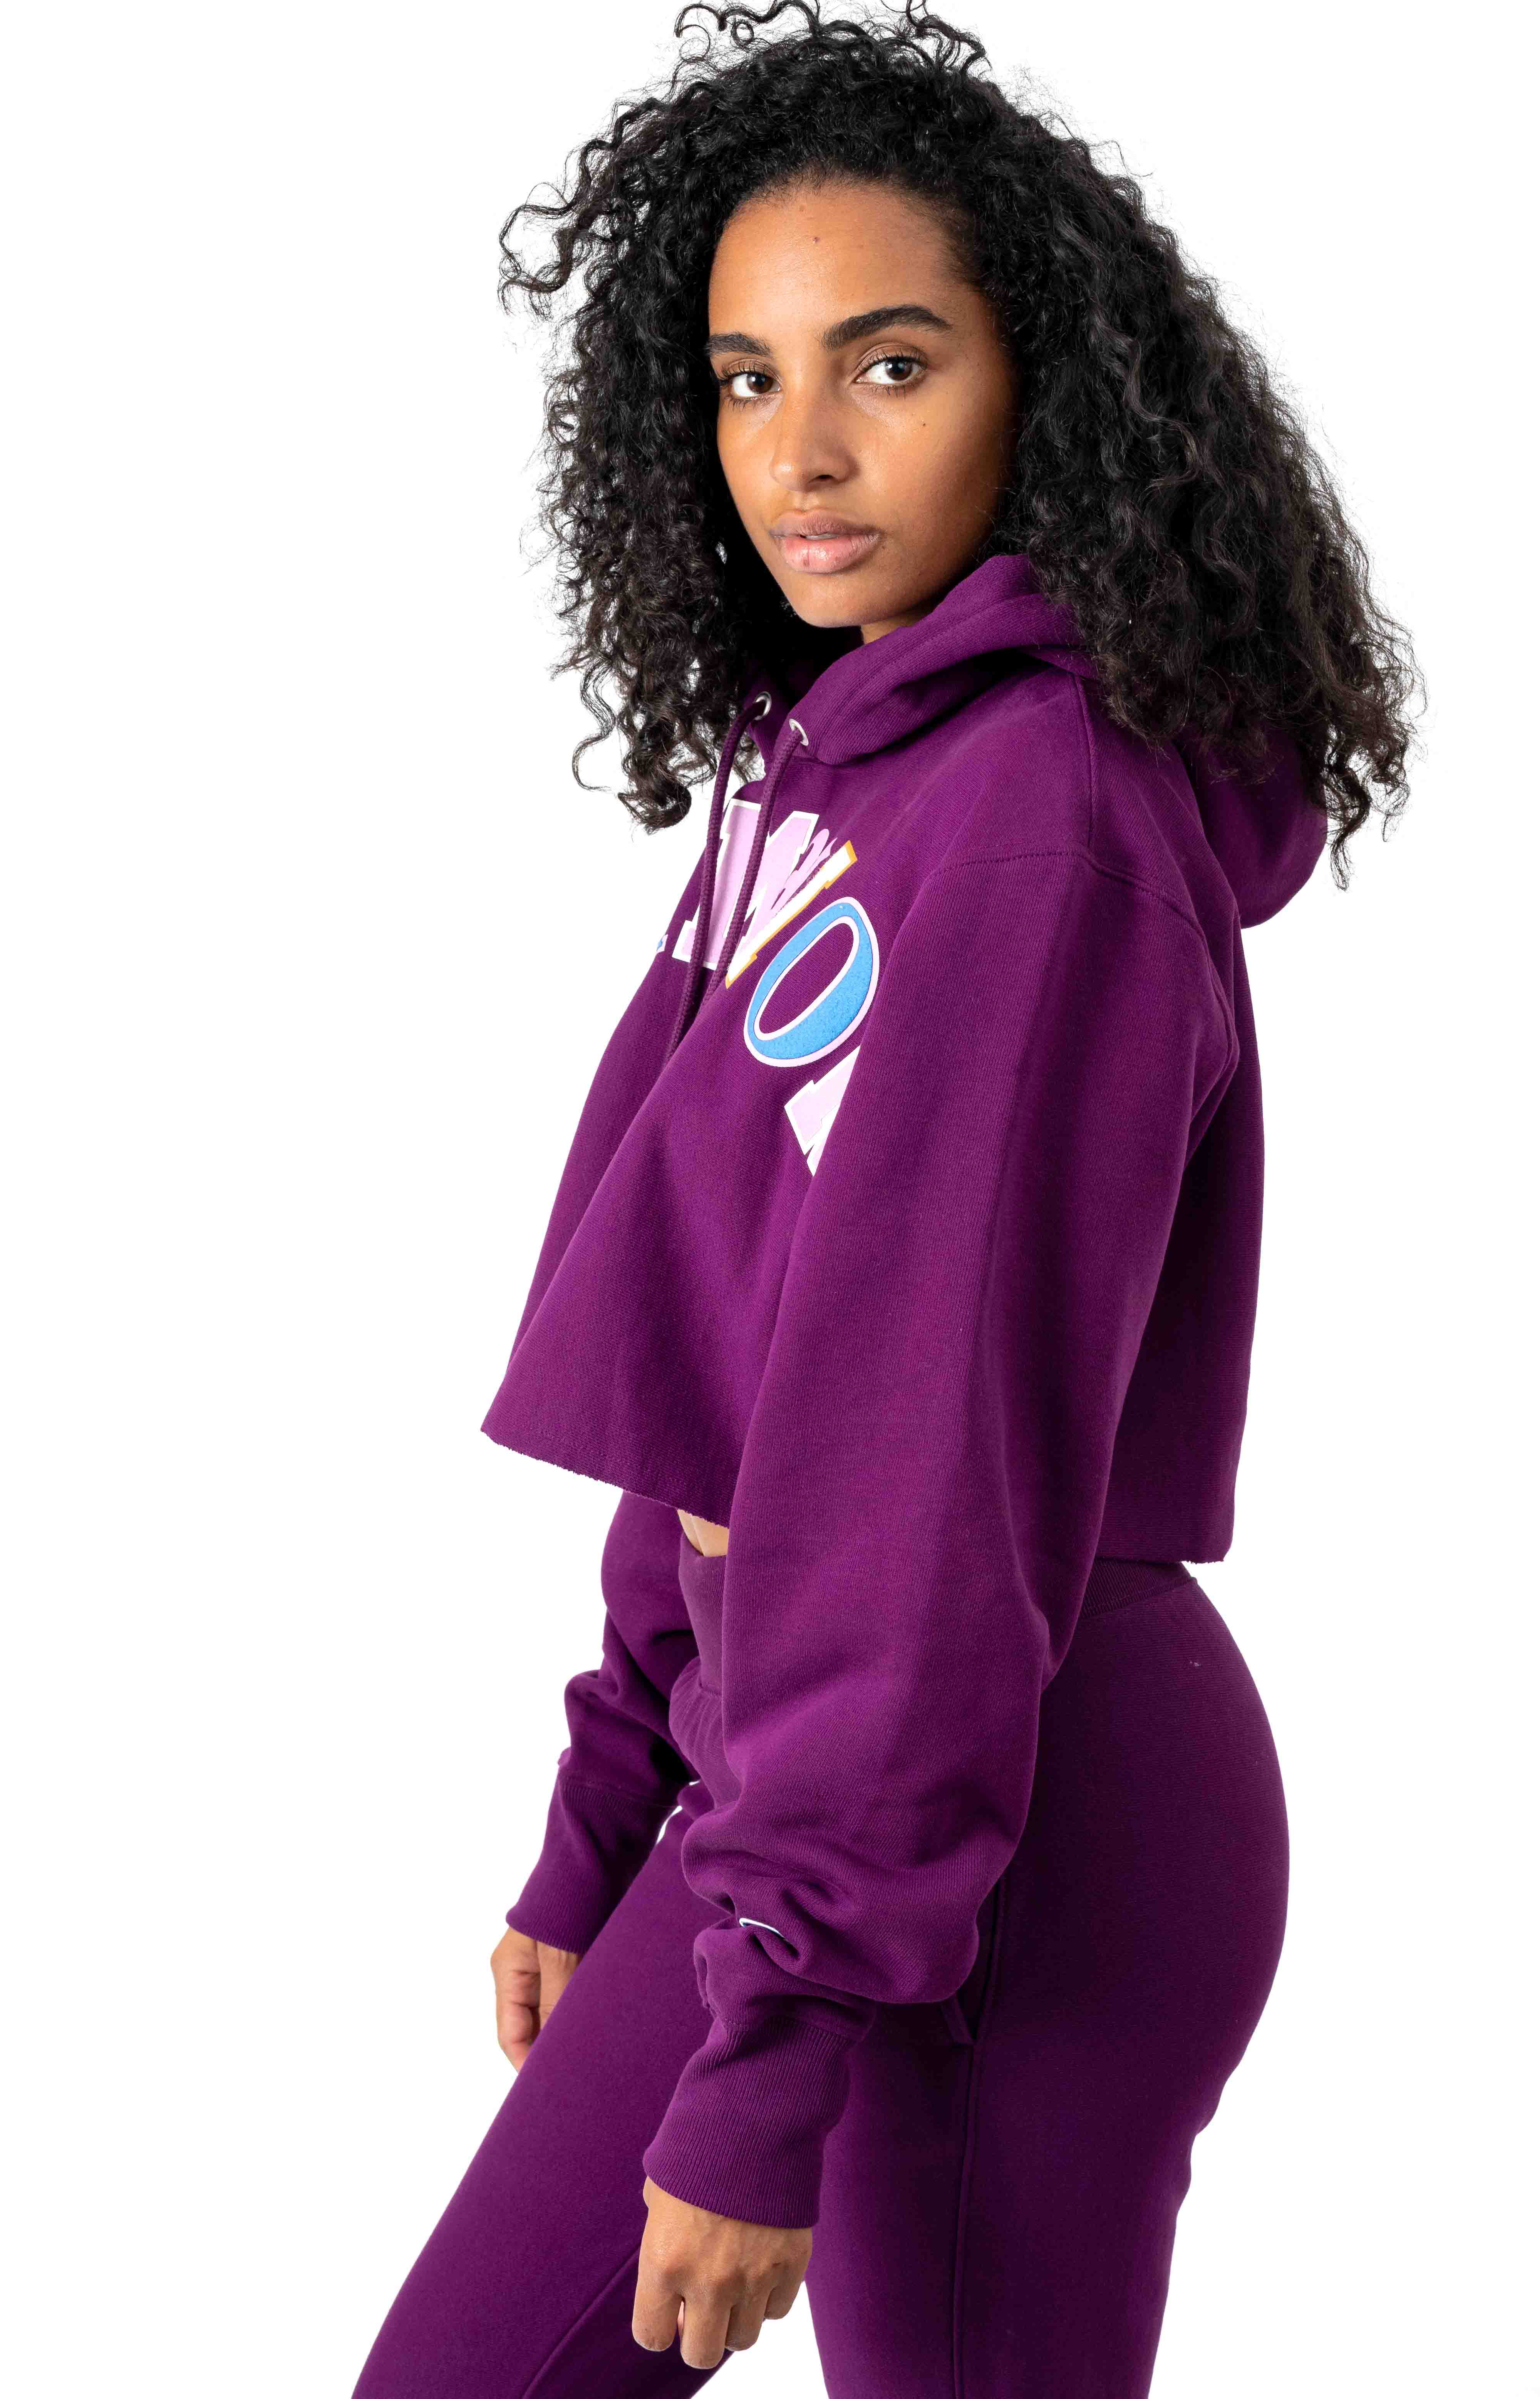 RW Old English Lettering Cropped Cutoff Pullover Hoodie - Venetian Purple 2